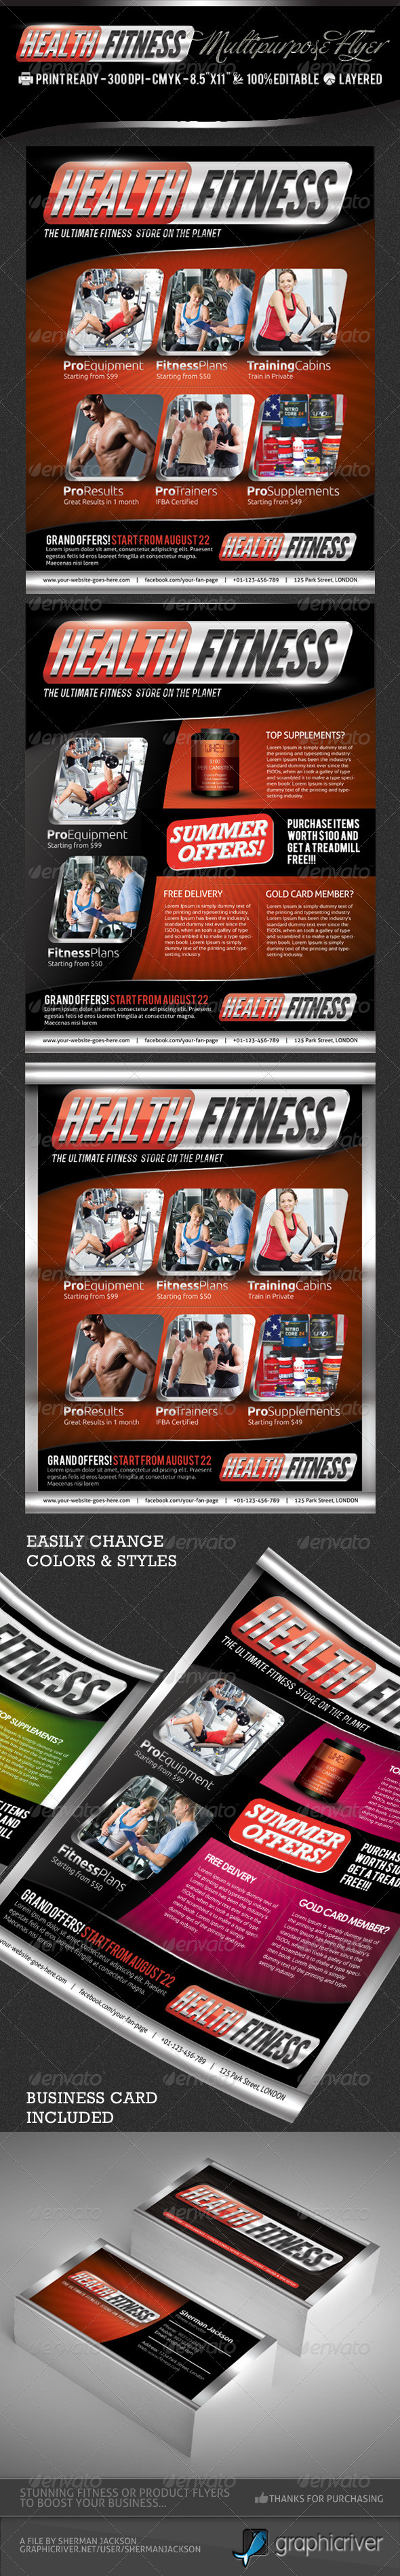 Health & Fitness Pro Flyer & Business Card PSD